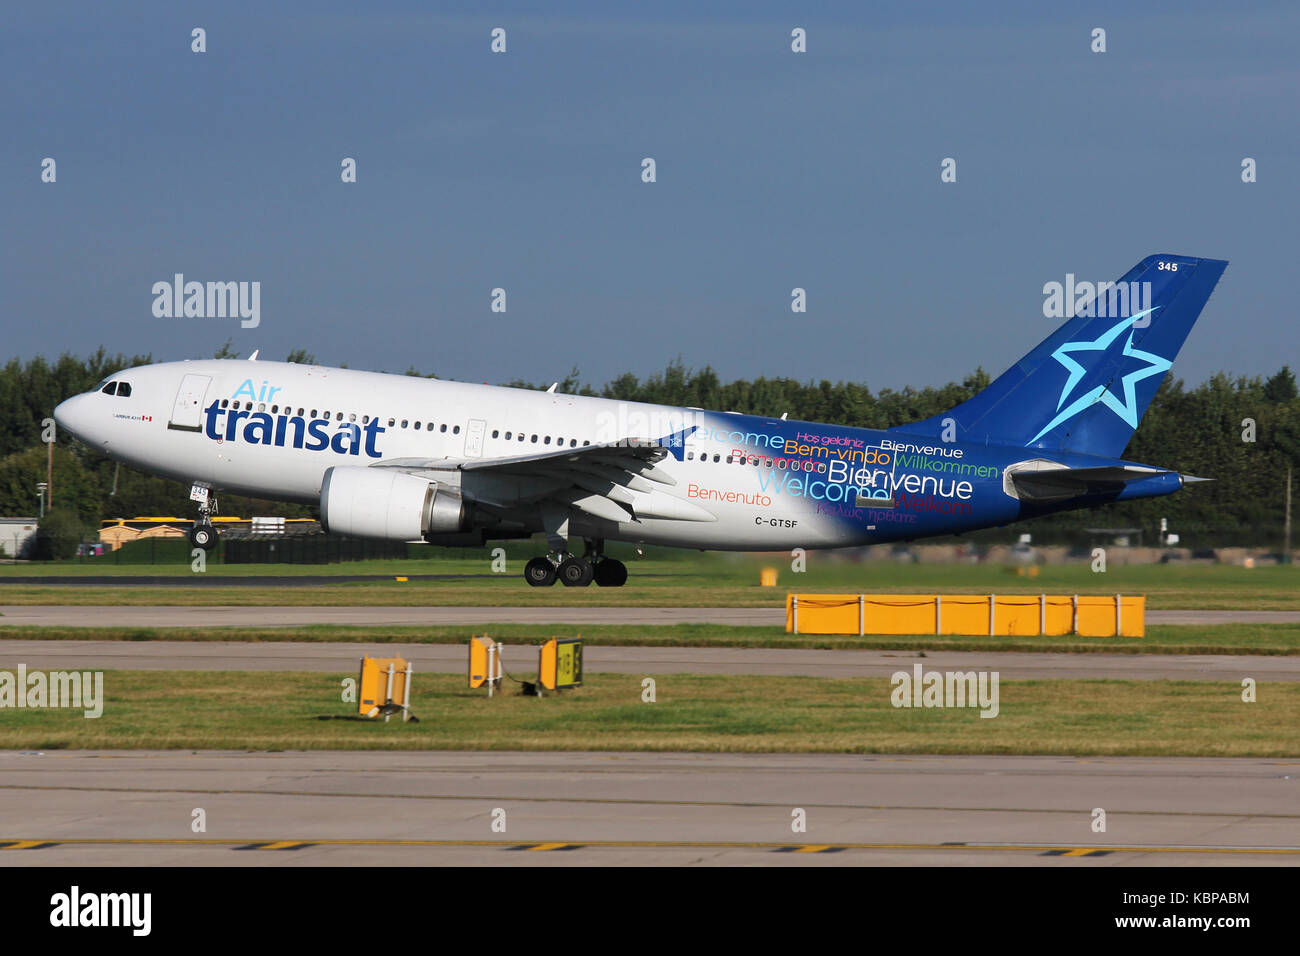 Air Transat A310 - Stock Image